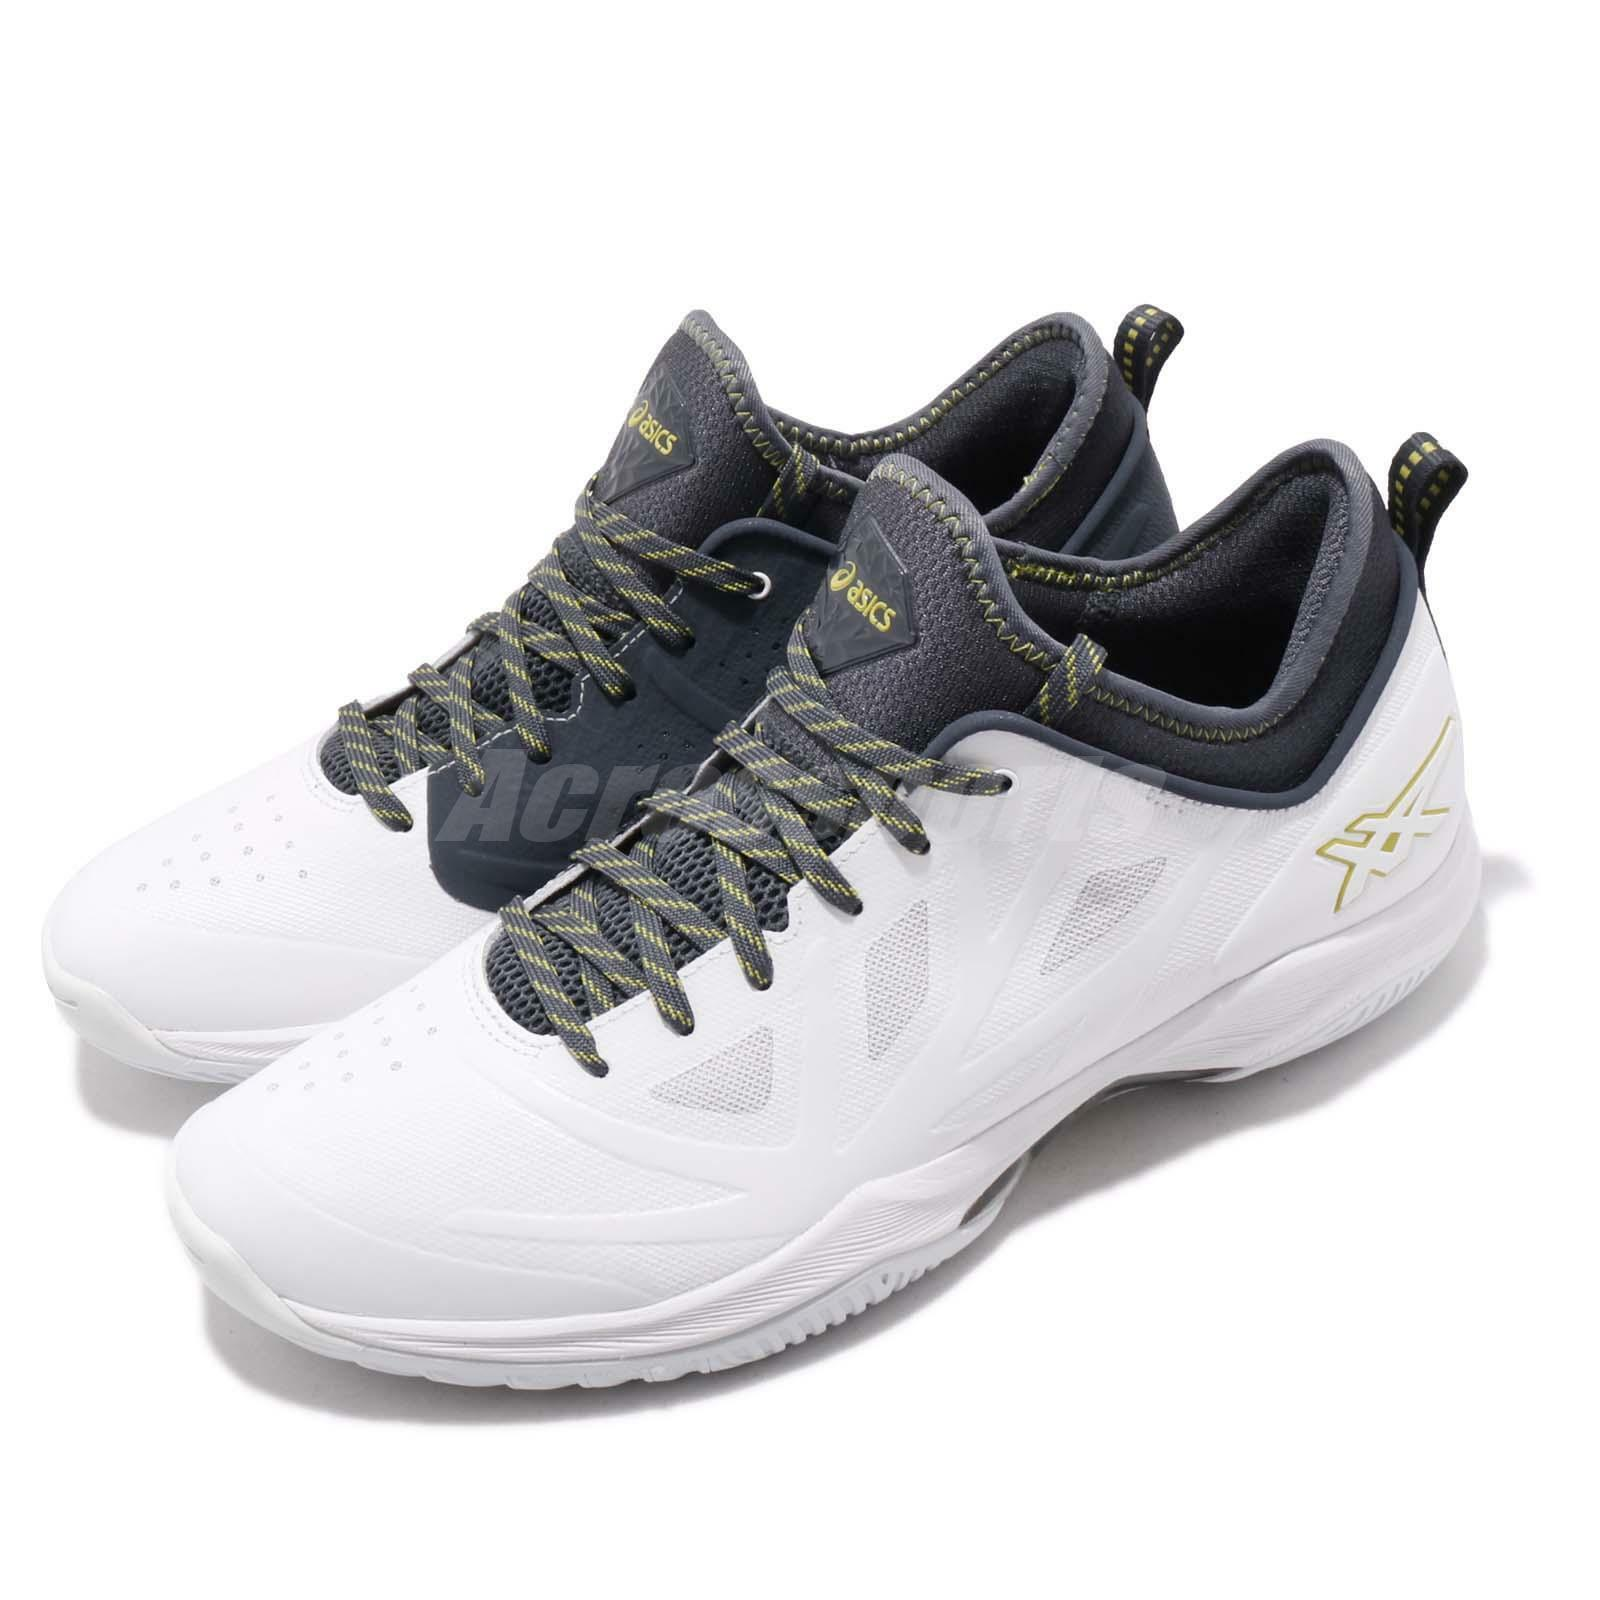 Asics Glide Nova FF White Tarmac Grey Men Basketball shoes Sneakers 1061A003-116